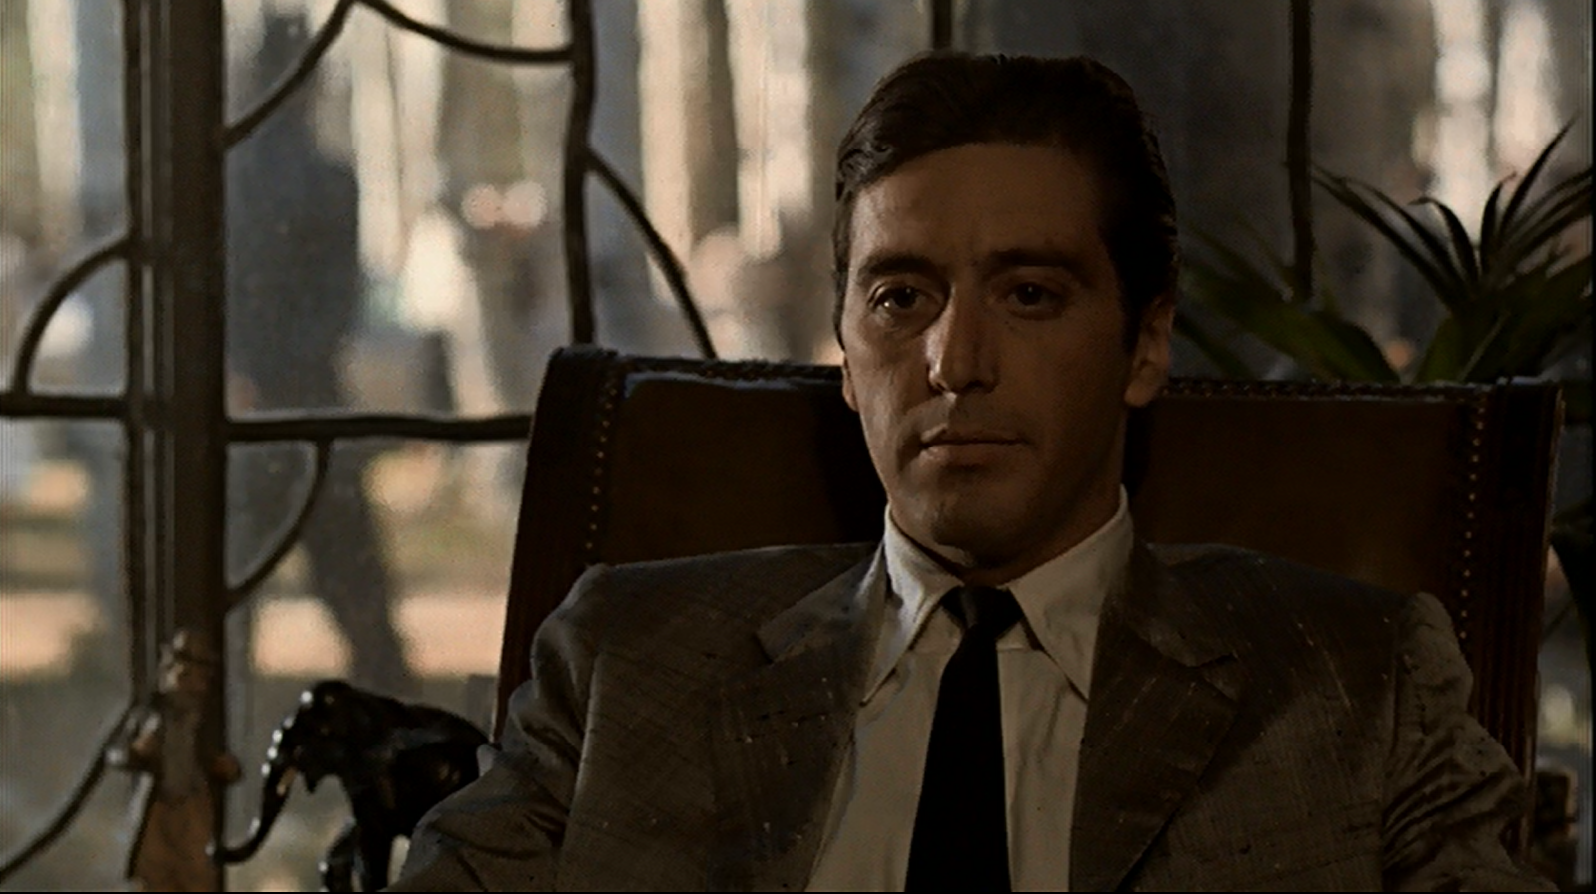 Worst Best Picture: Is The Godfather Part II Better or Worse